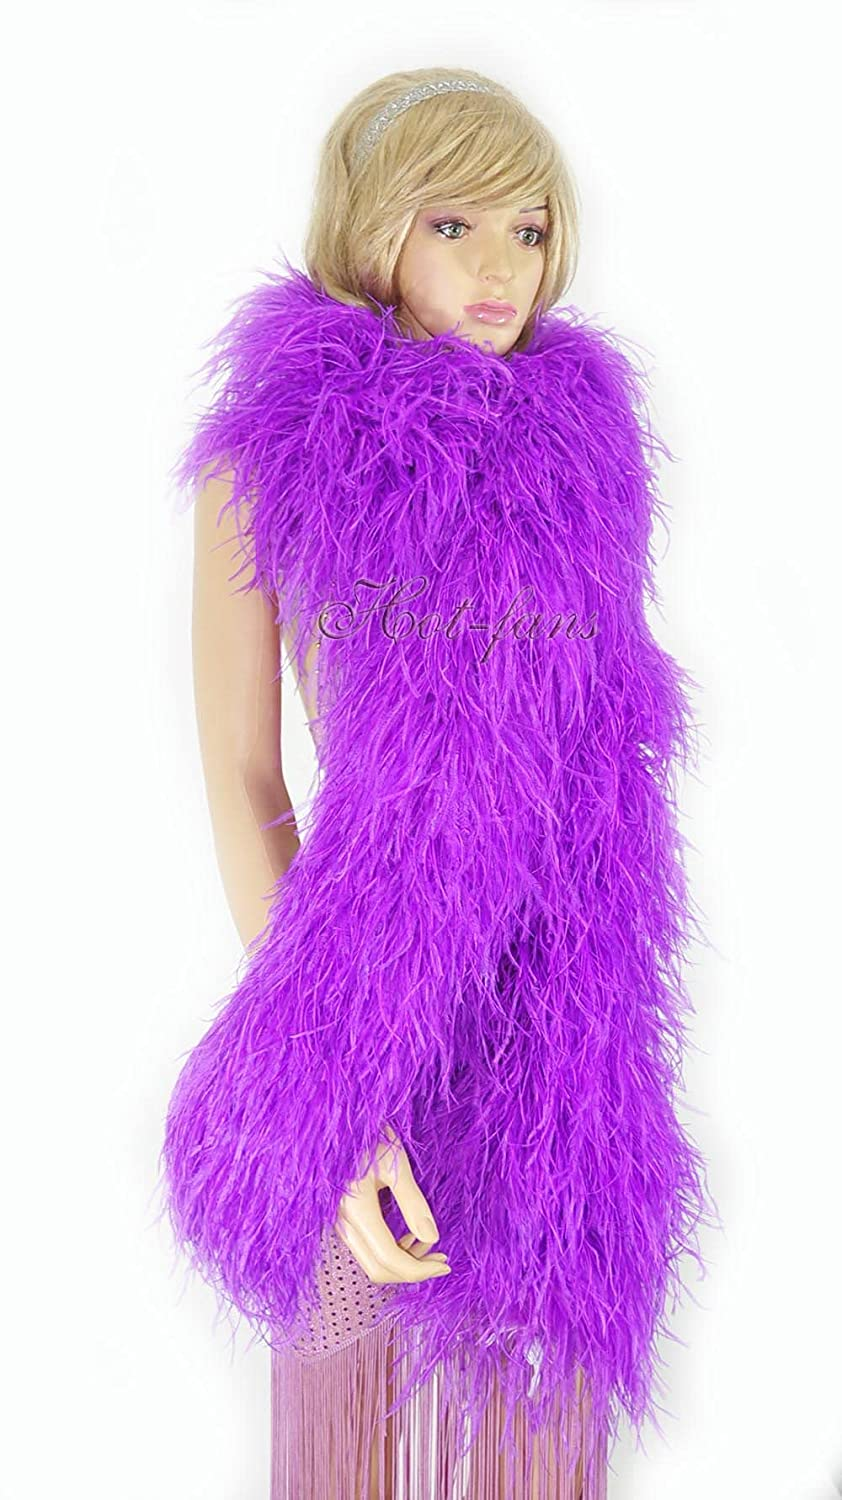 New Free Shipping 20 ply Limited time trial price lavender Luxury Ostrich Boa 71